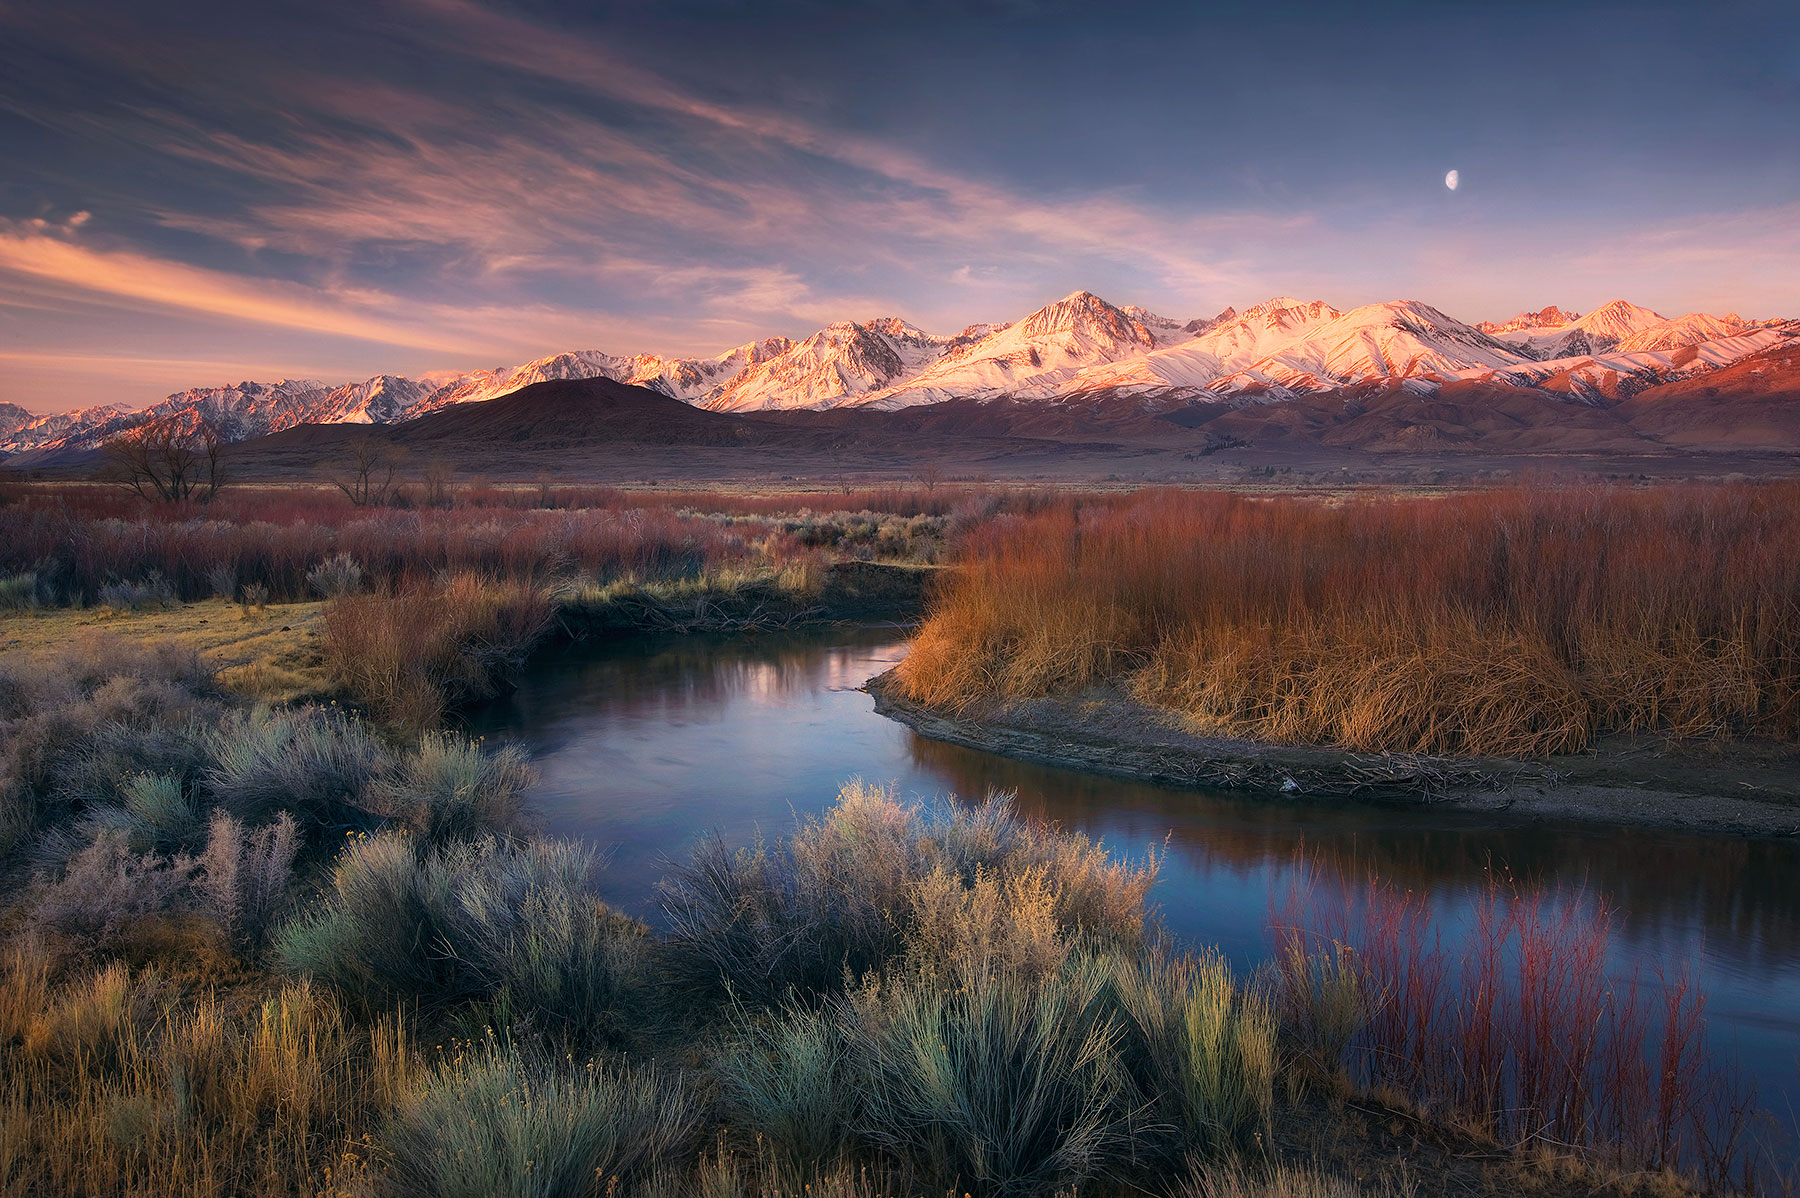 Moon, Sunrise, Eastern Sierra, Owens River, California, photo